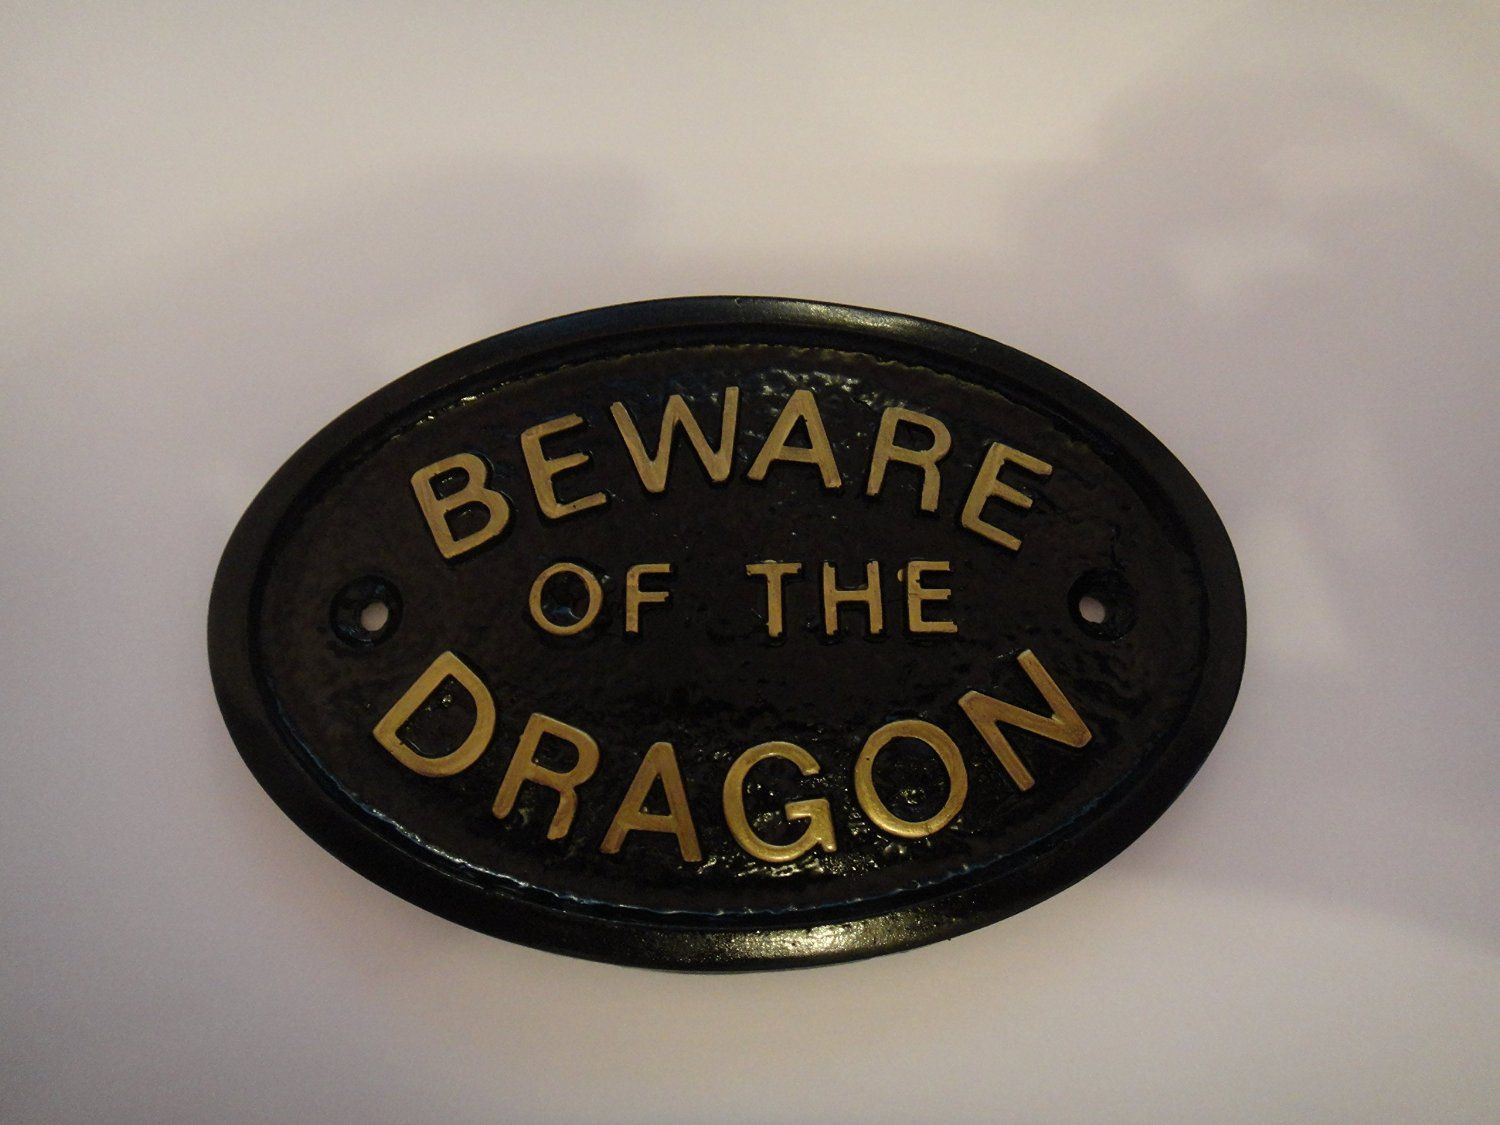 "/""BEWARE OF THE DRAGON/"" HOUSE DOOR PLAQUE WALL SIGN GARDEN BLACK//GOLD LETTERS"